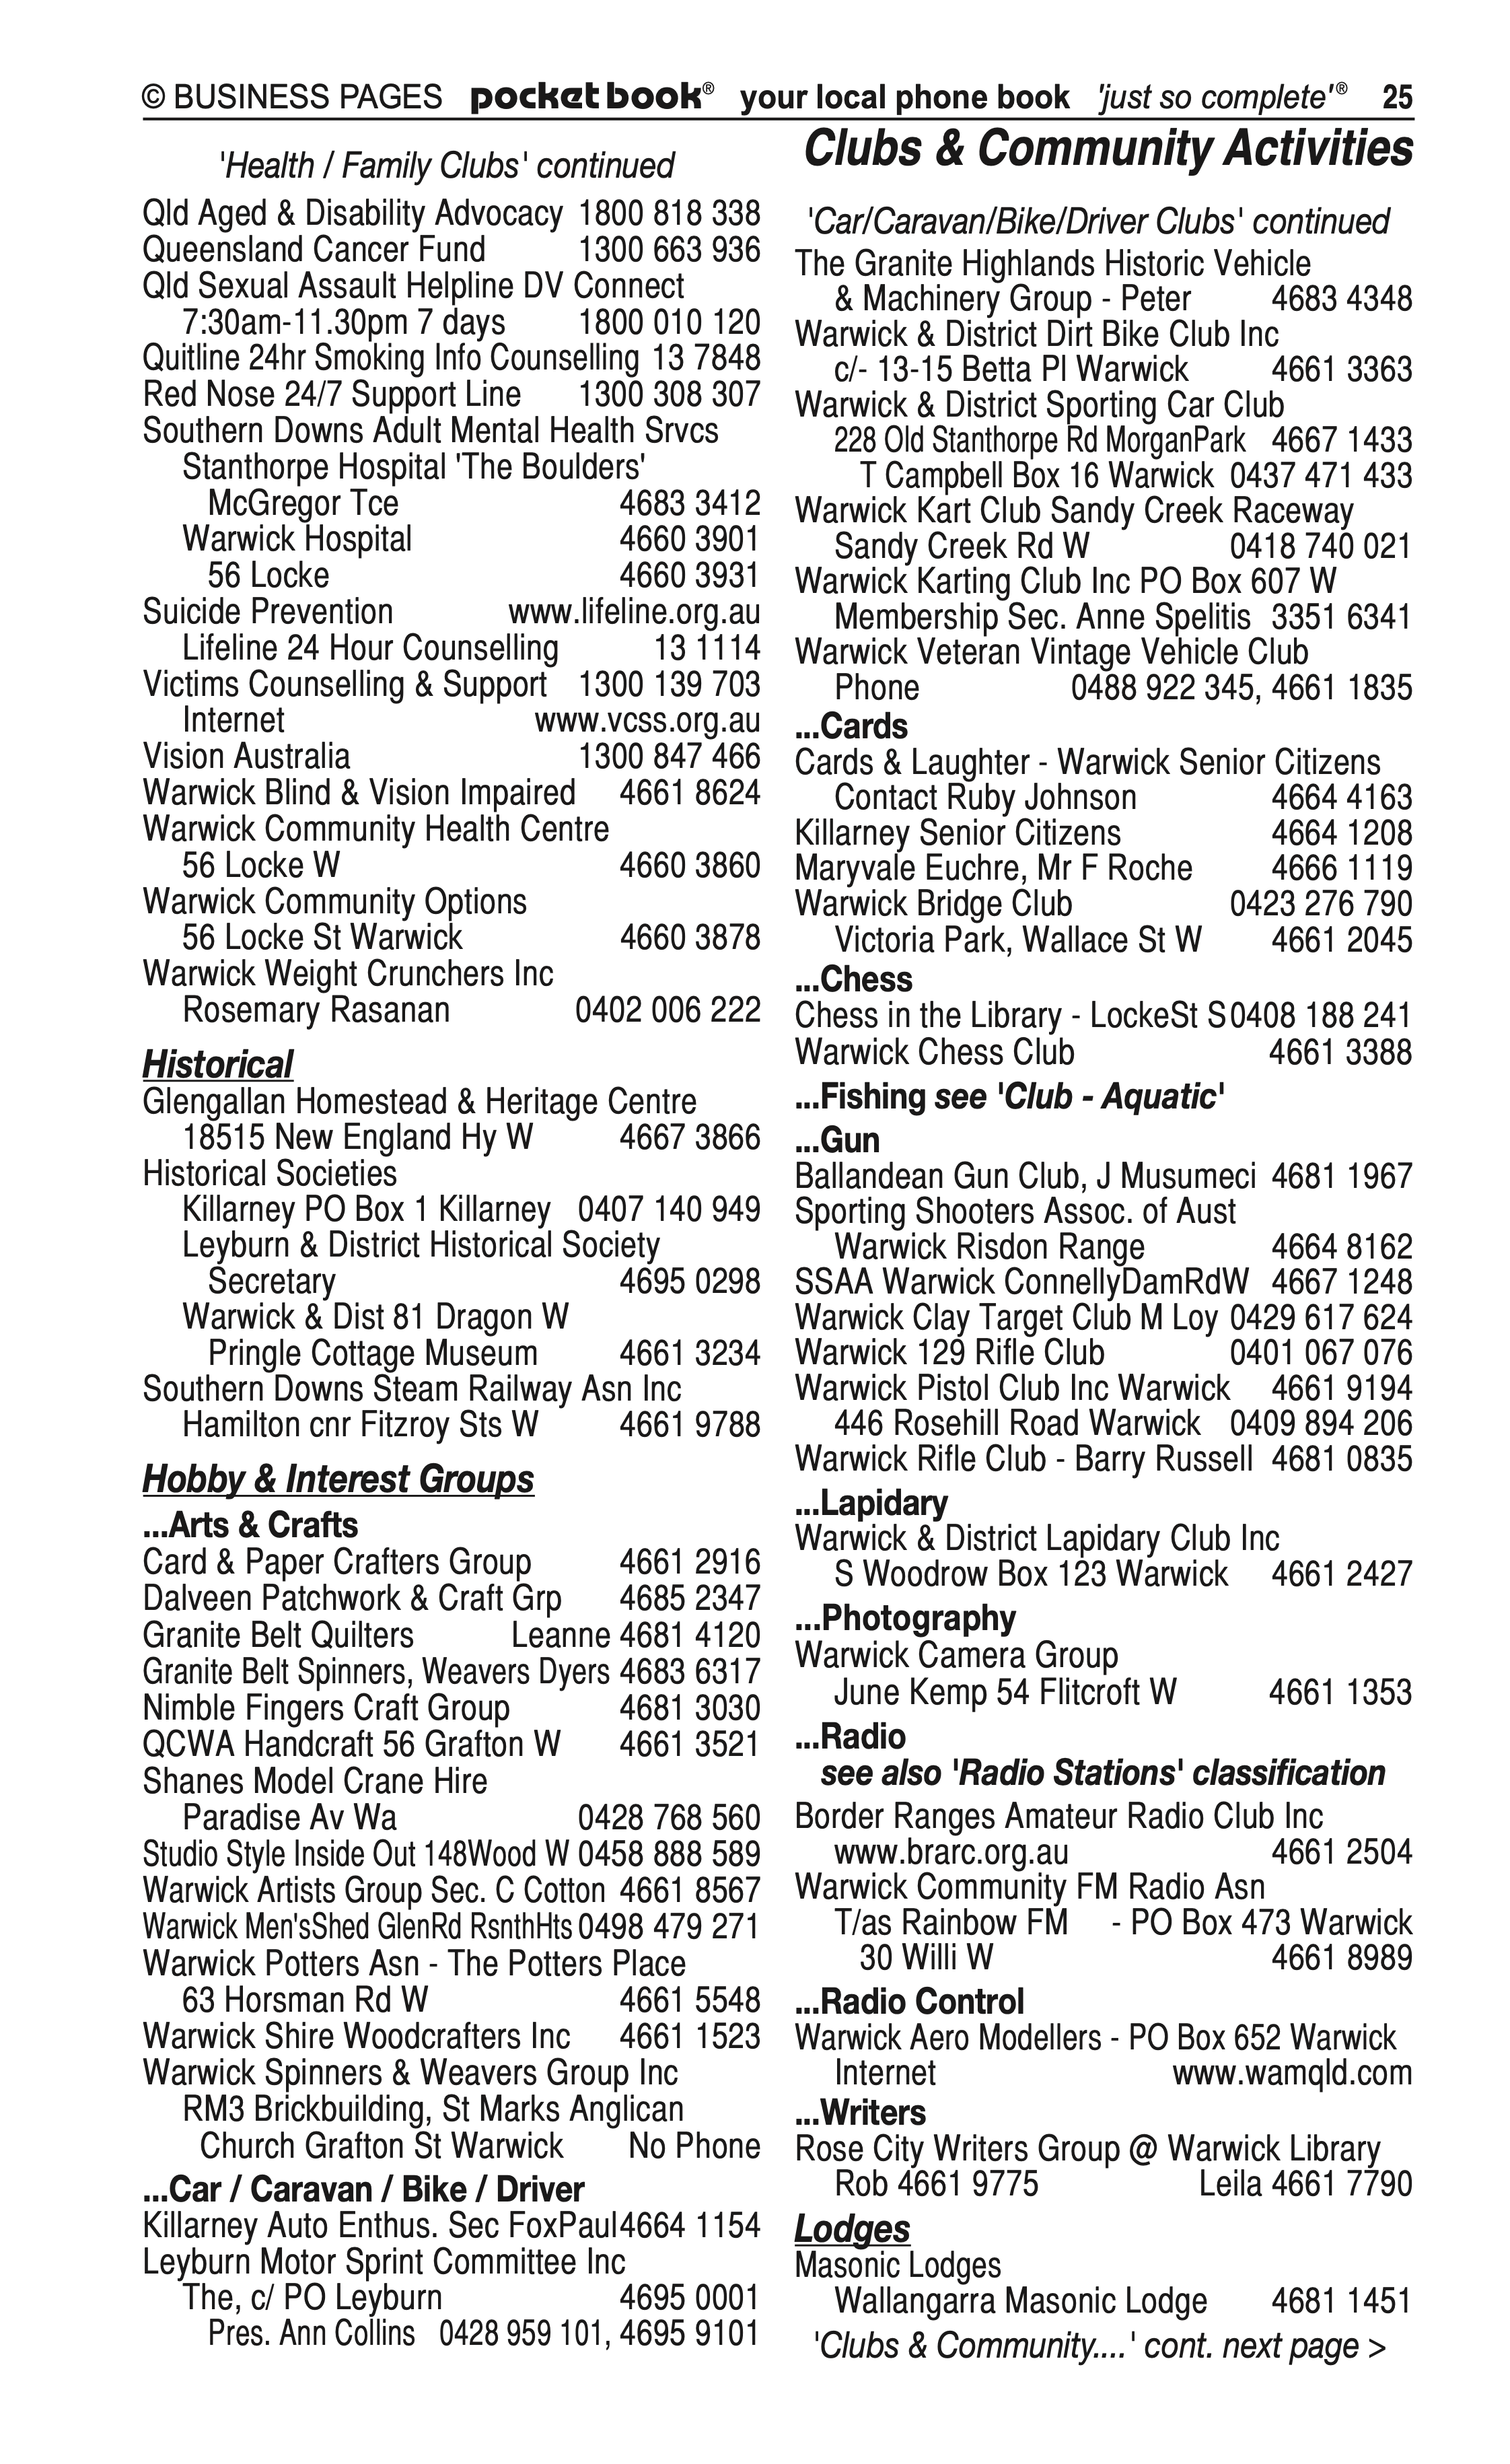 Speed Detailing Pty Ltd | Agricultural – Machinery & Services in Warwick | PBezy Pocket Books local directories - page 25